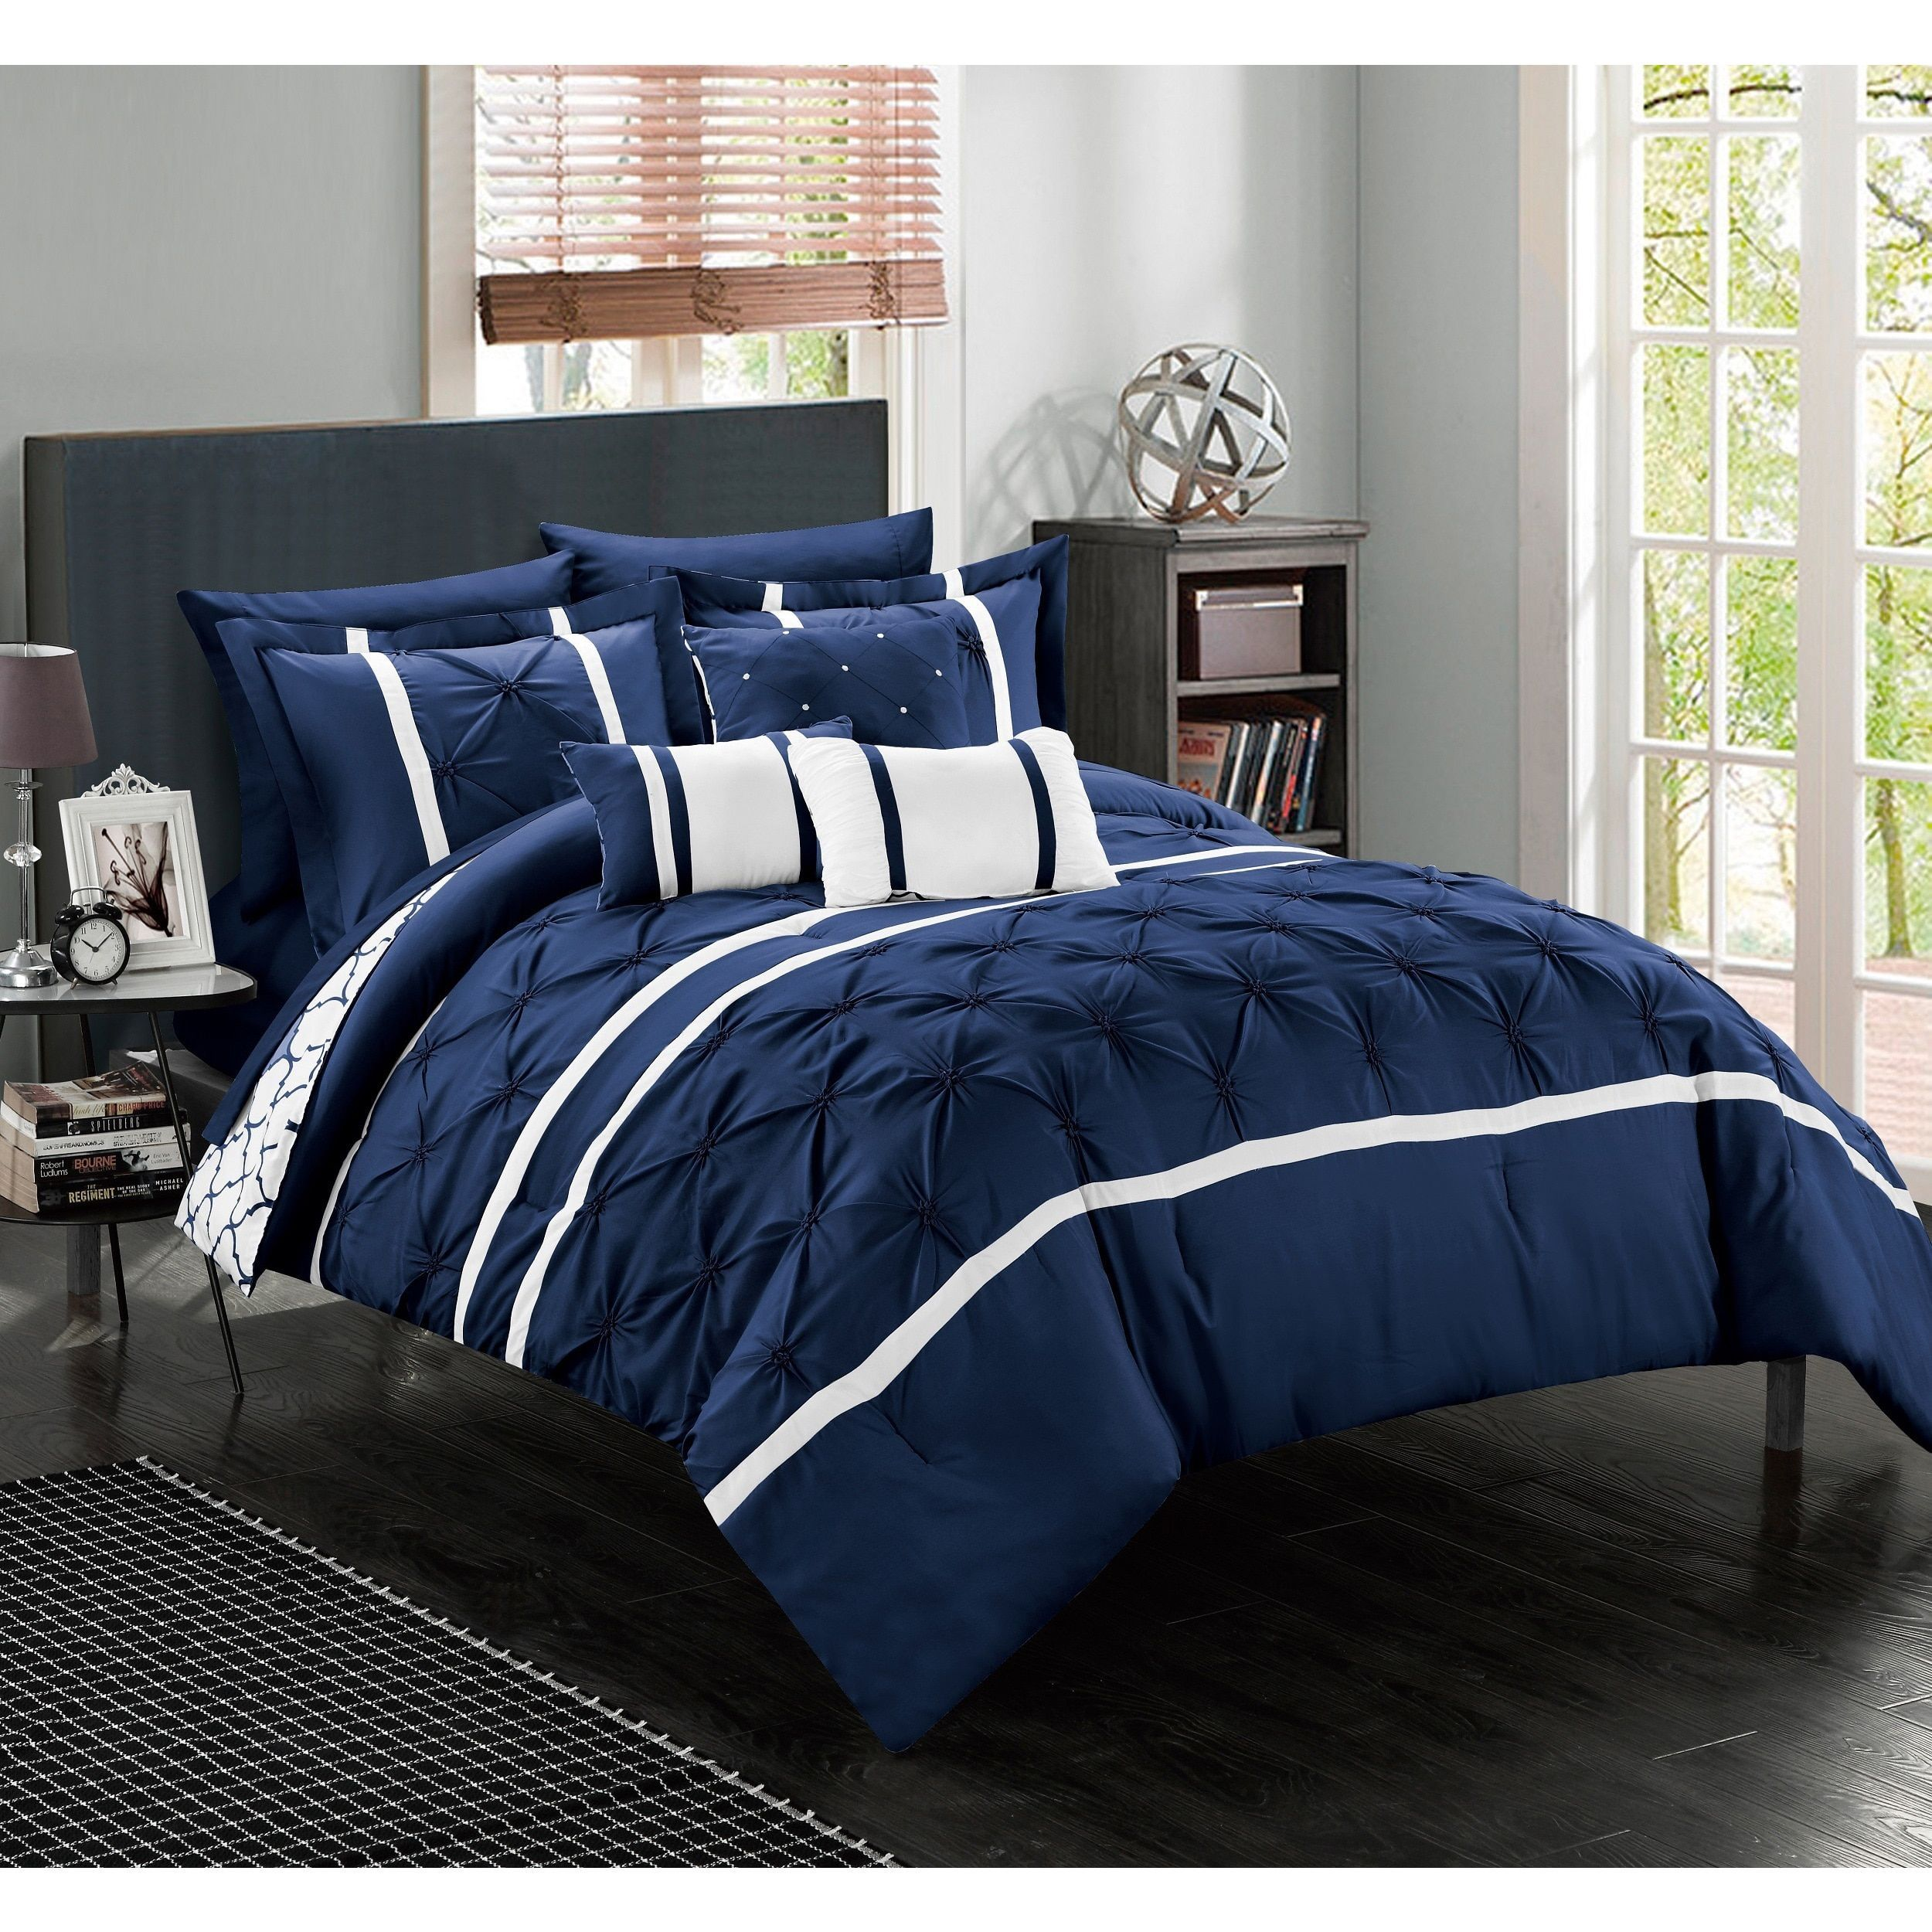 dress up your bedroom decor with this 10piece comforter set this reversible